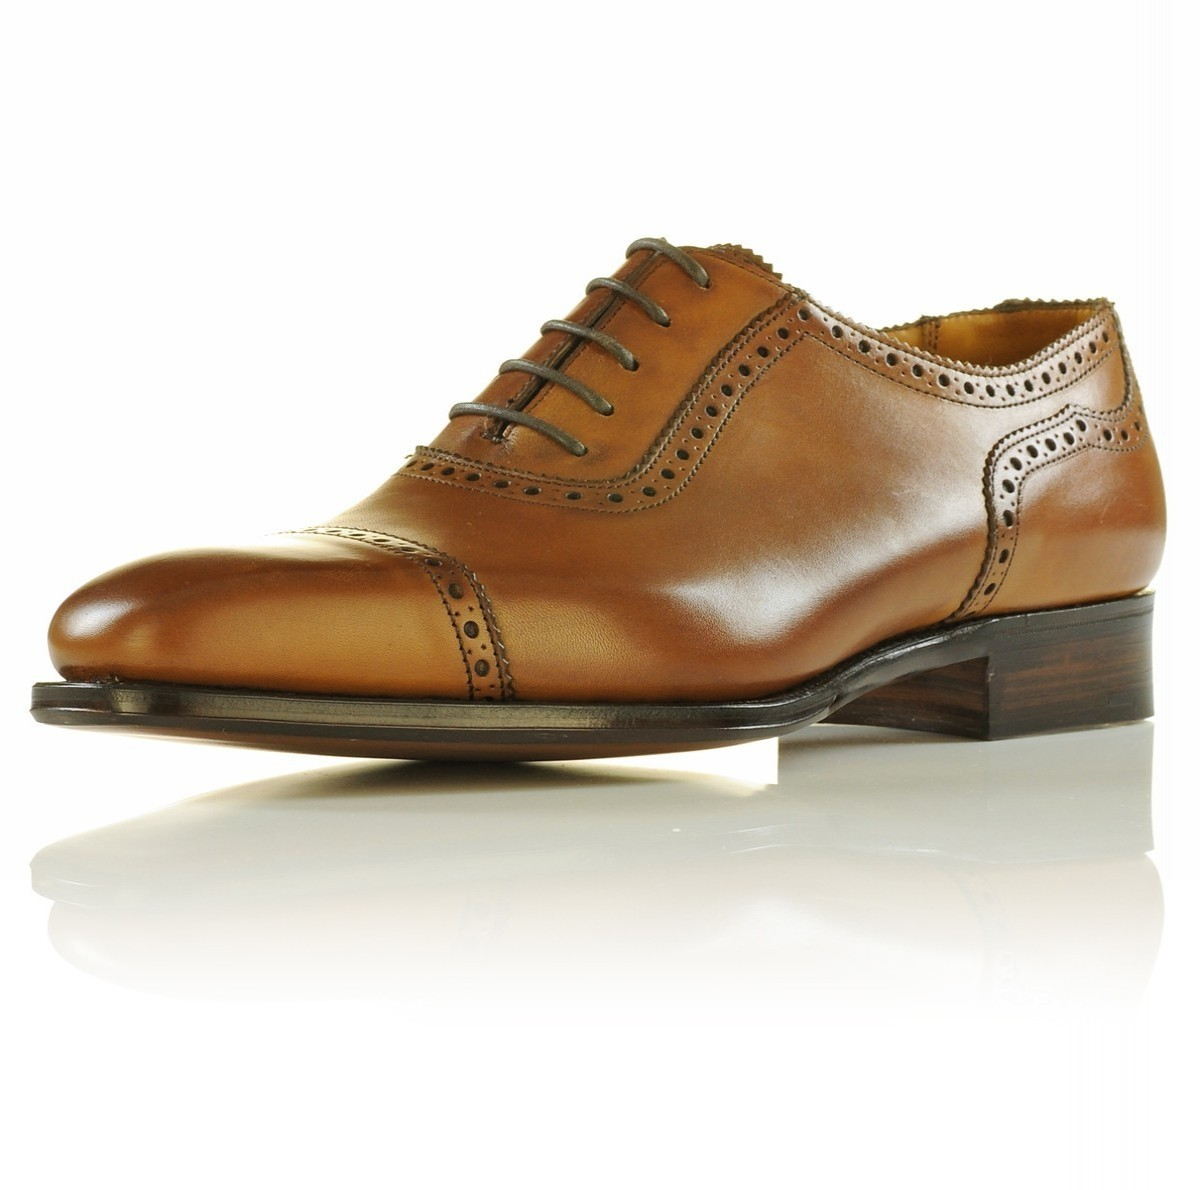 Handmade Men's Brown Leather Dress/Formal Oxford Shoes